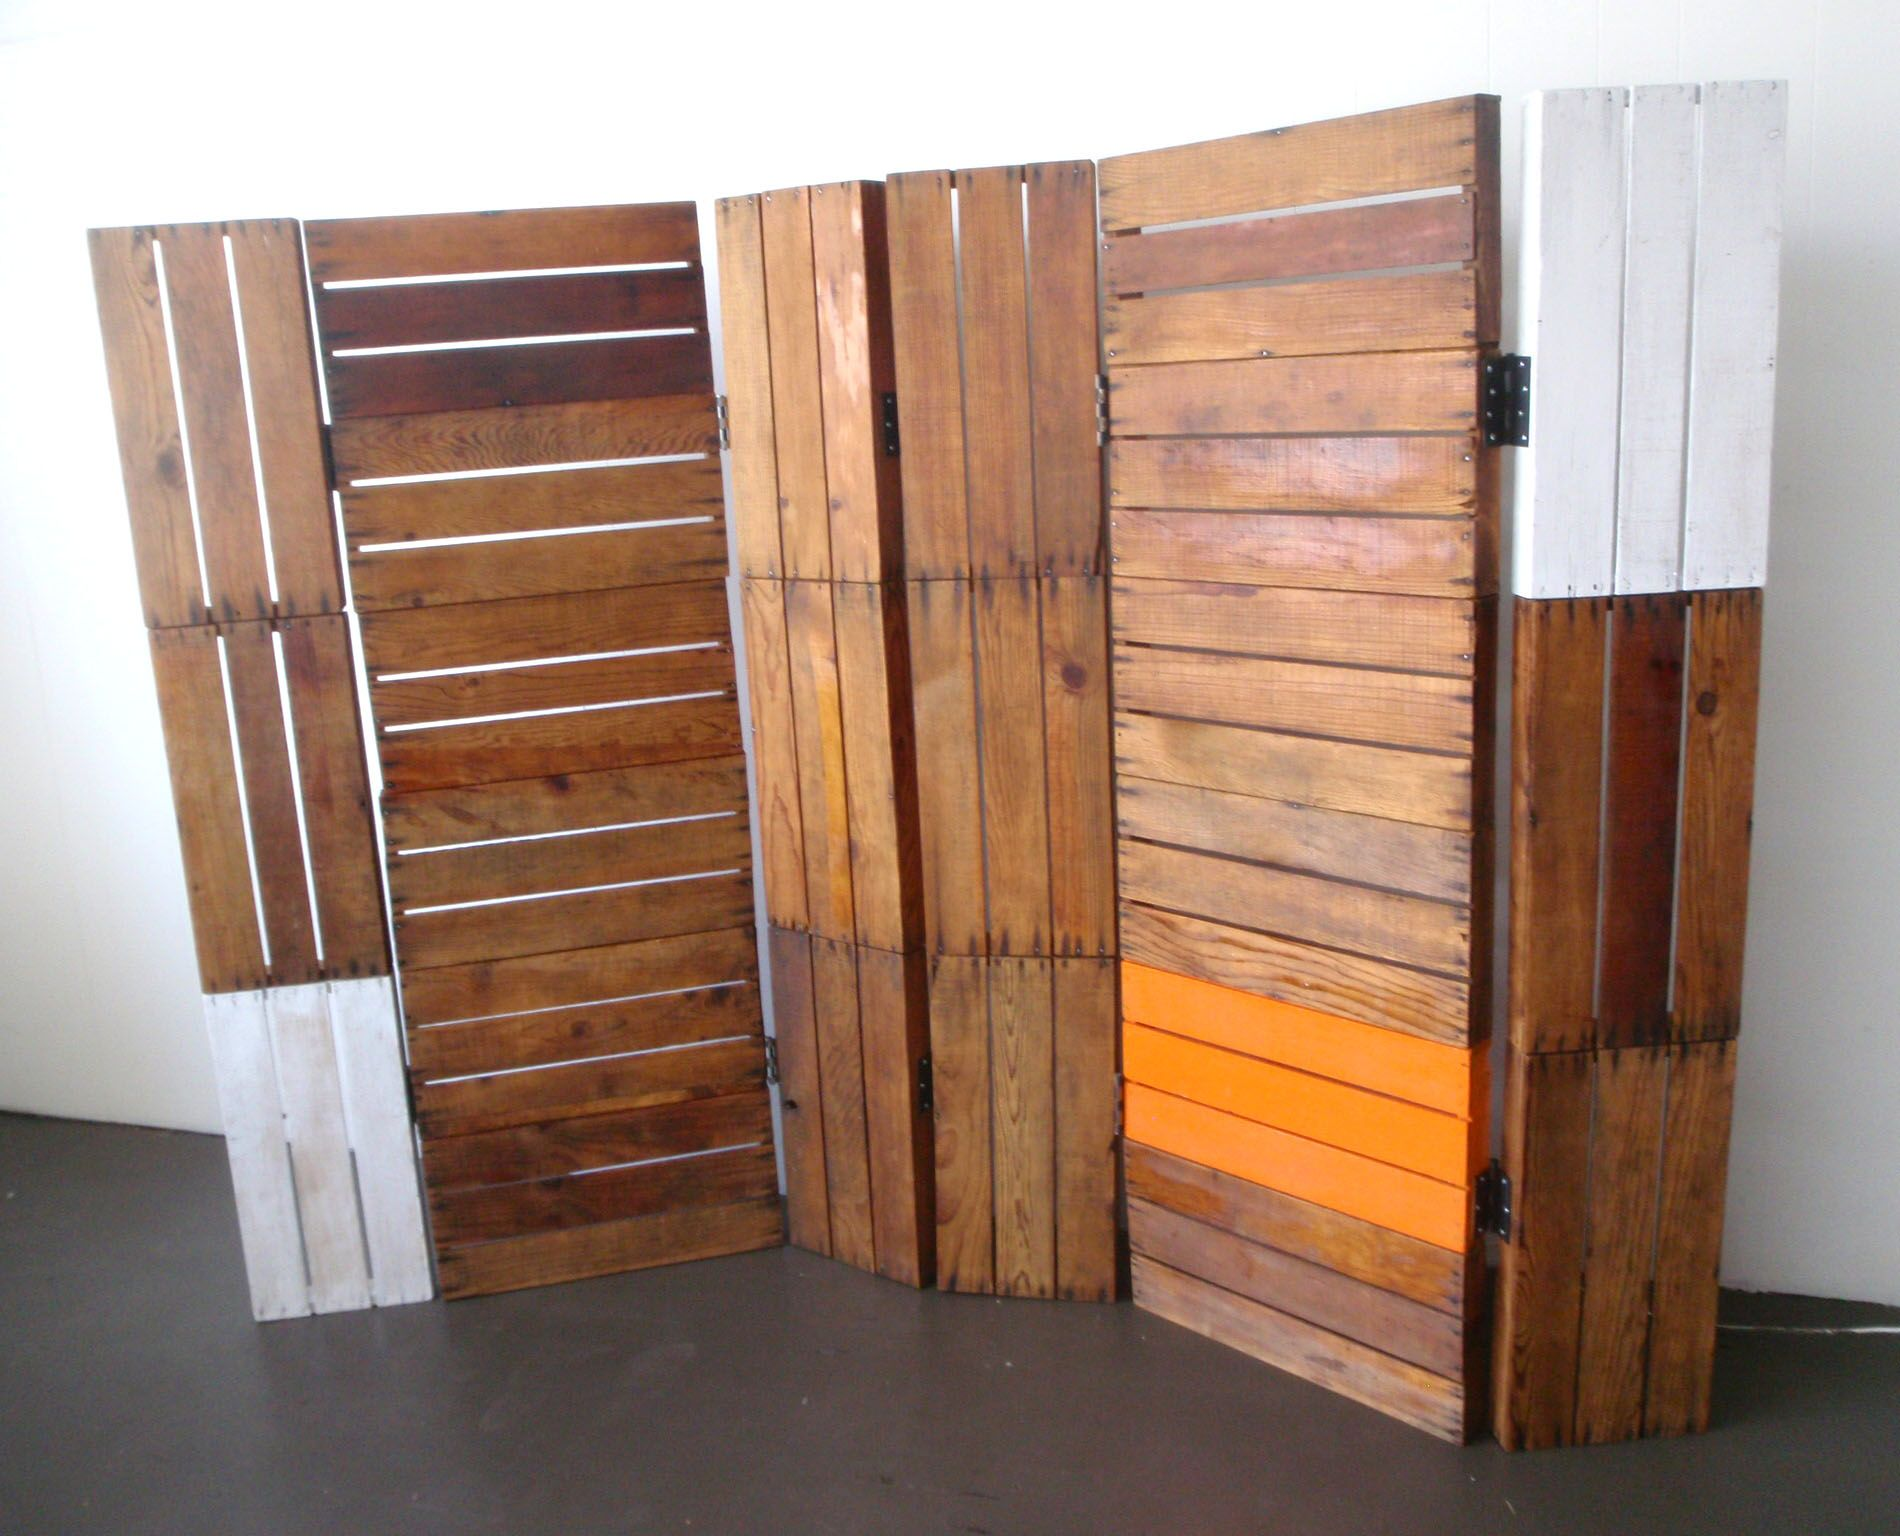 Movable Room Divider Ideas Palette Room Divider 1  Pallet Room Pallets And Room